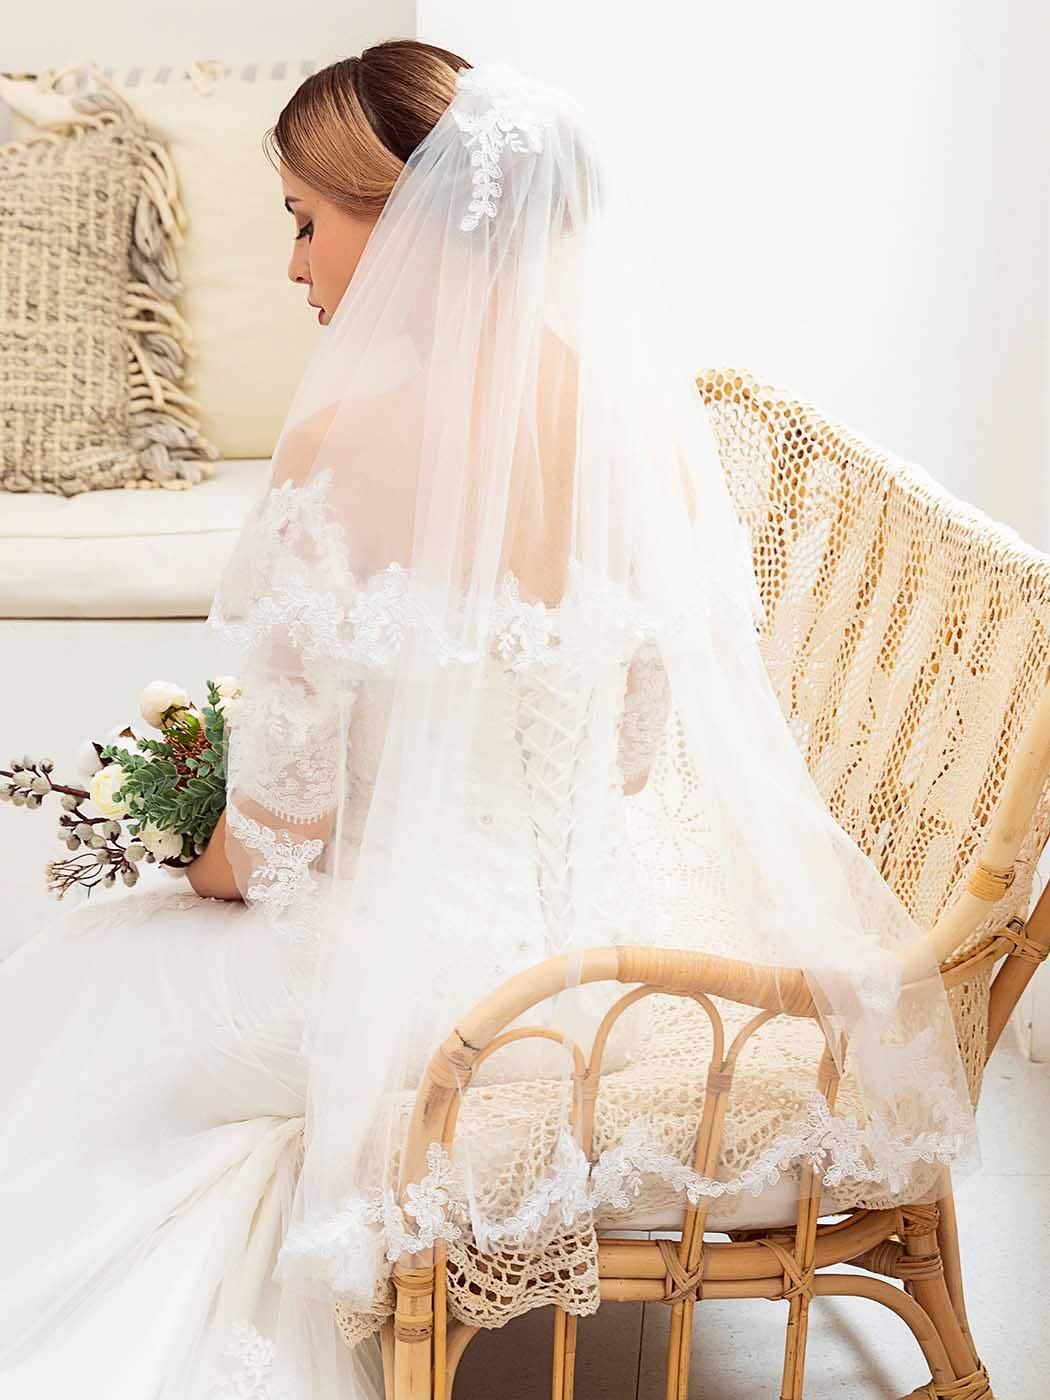 Barogirl Bride Wedding Veil Ivory 2 Tier Embroidery Short Bridal Veil Lace with Comb for Women (White)